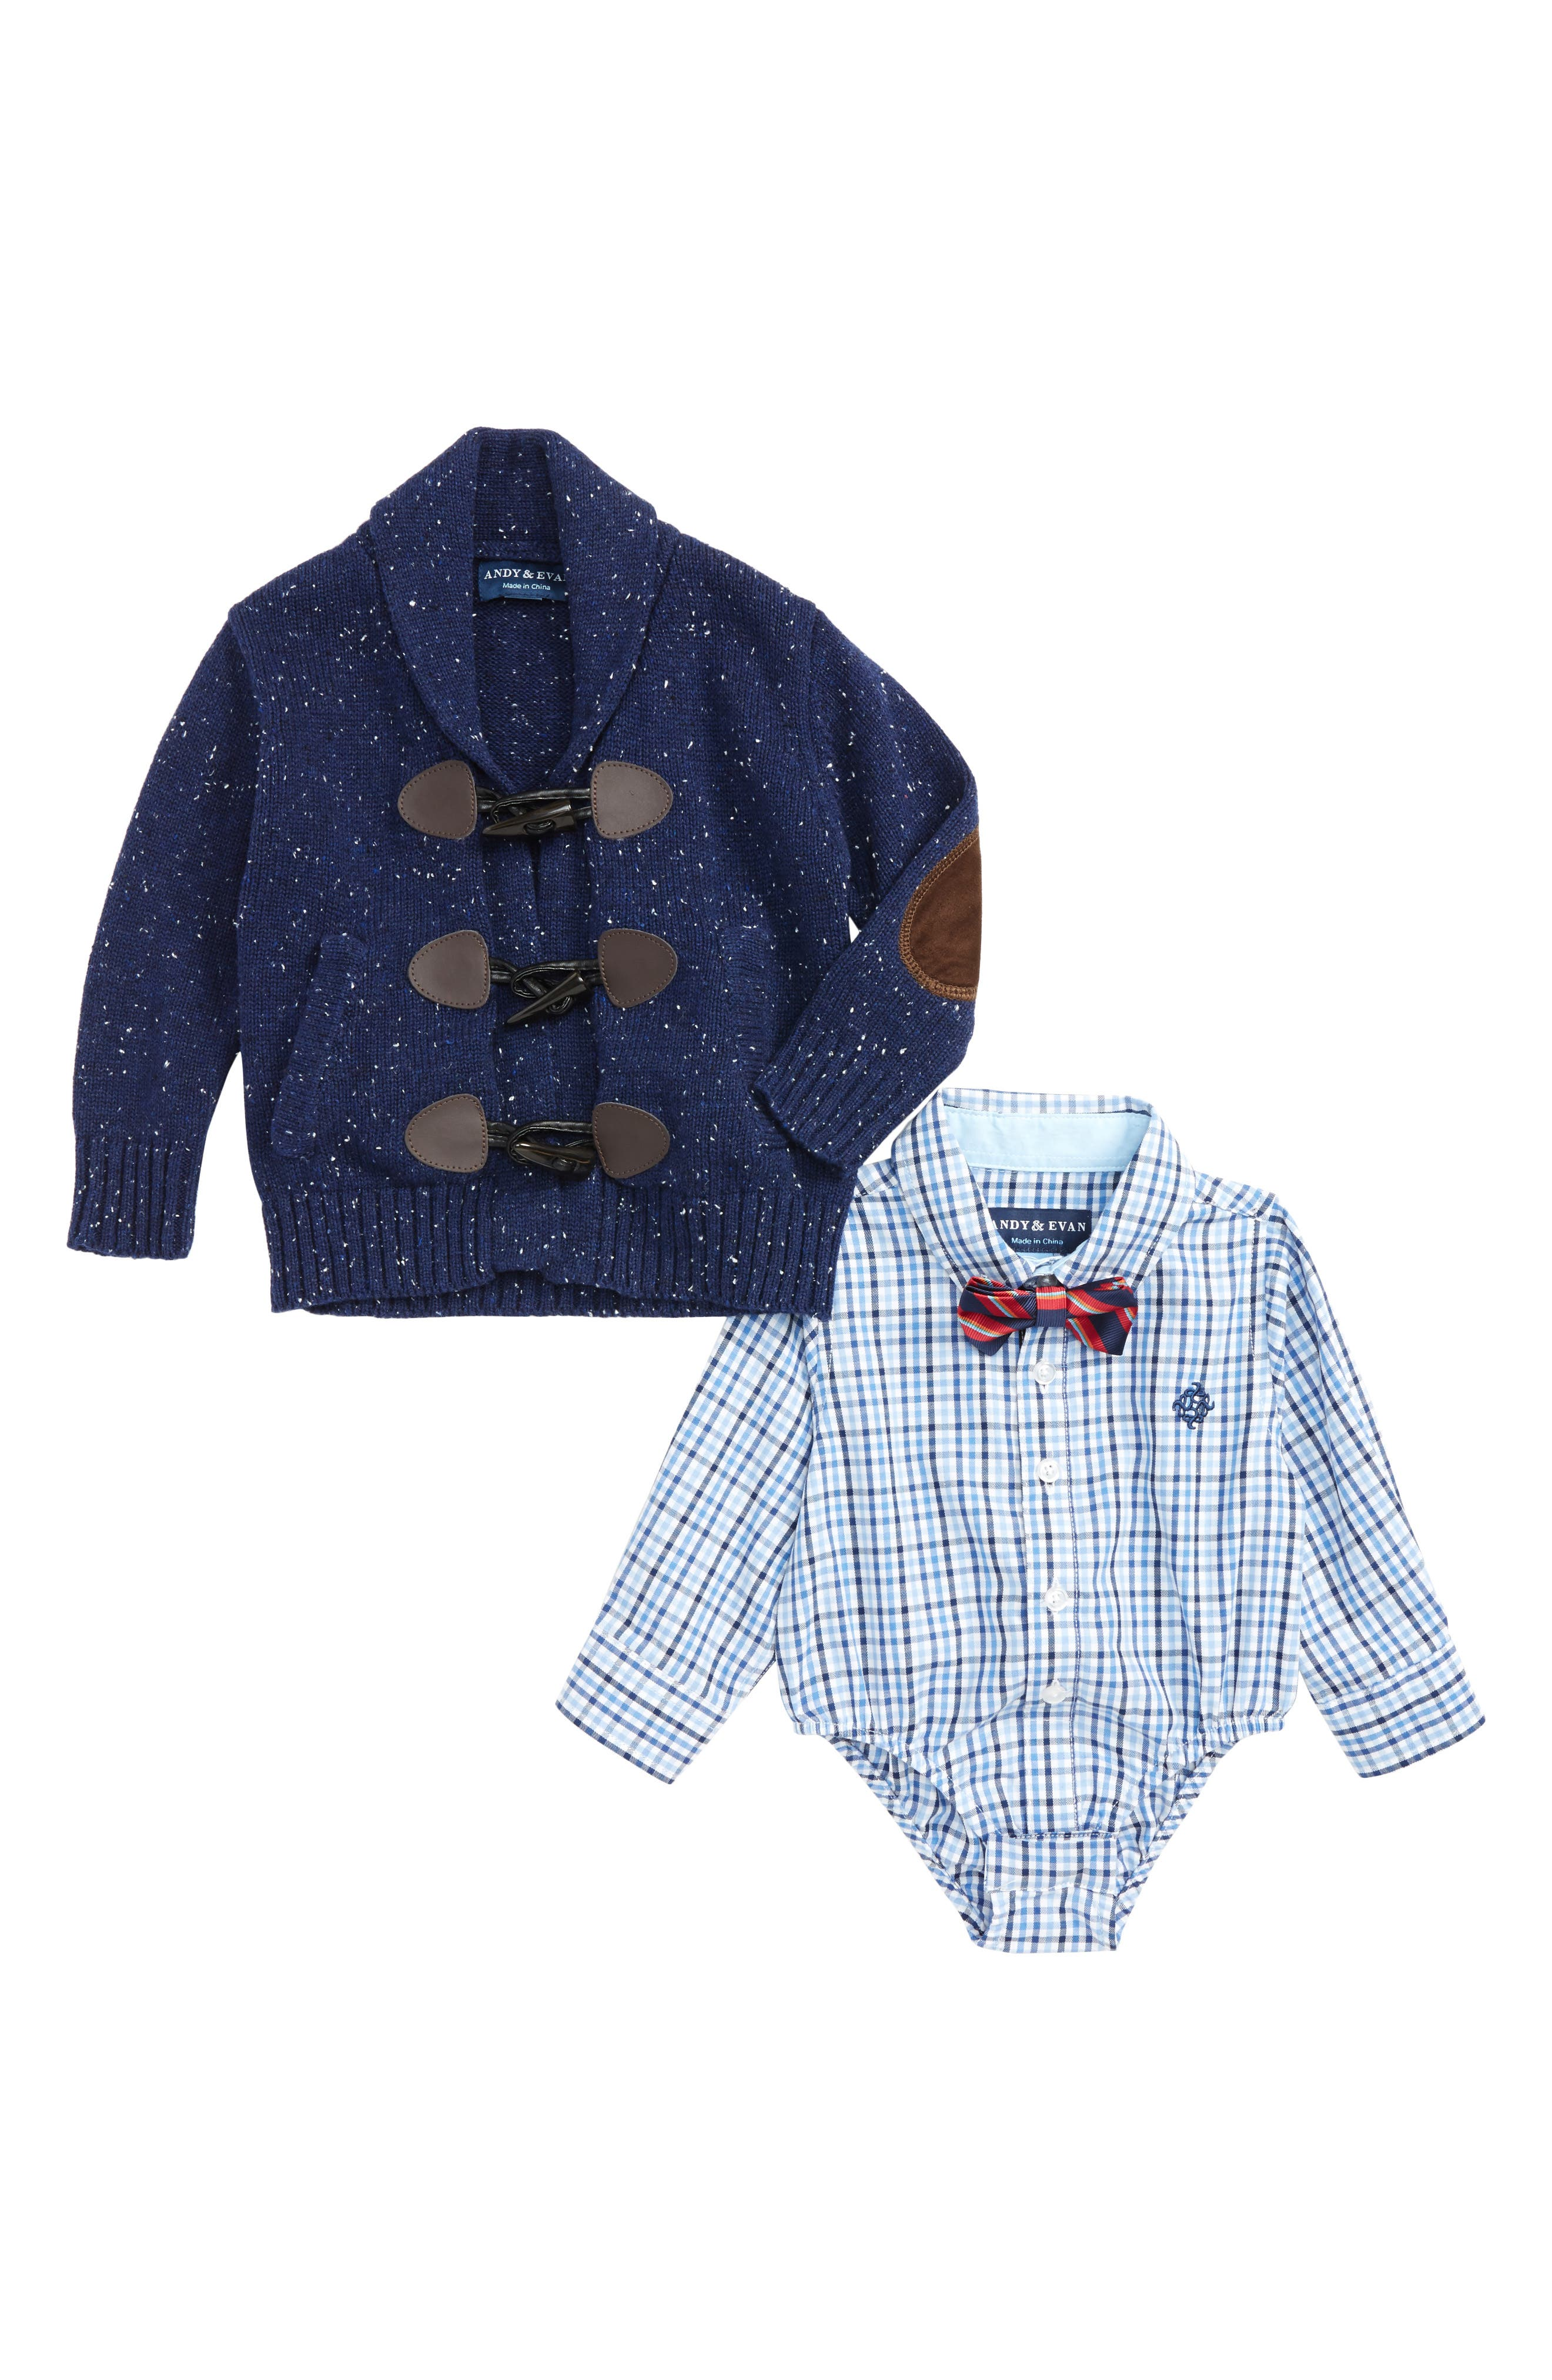 Andy & Evan Shirtzie Check Bodysuit, Bow Tie & Toggle Cardigan Set (Baby Boys)